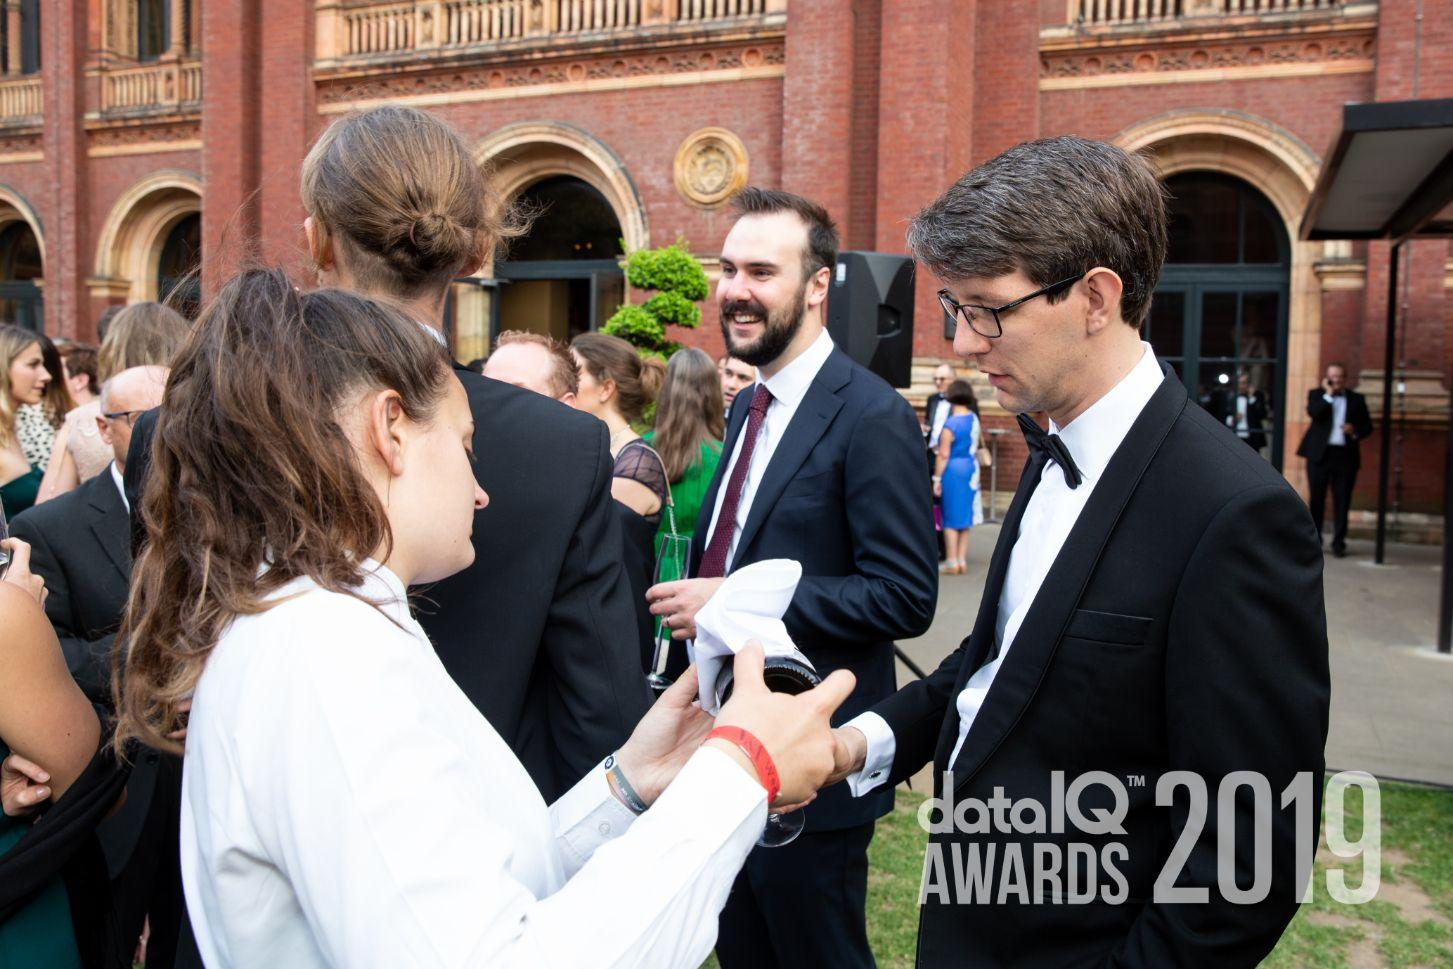 Awards 2019 Image 16